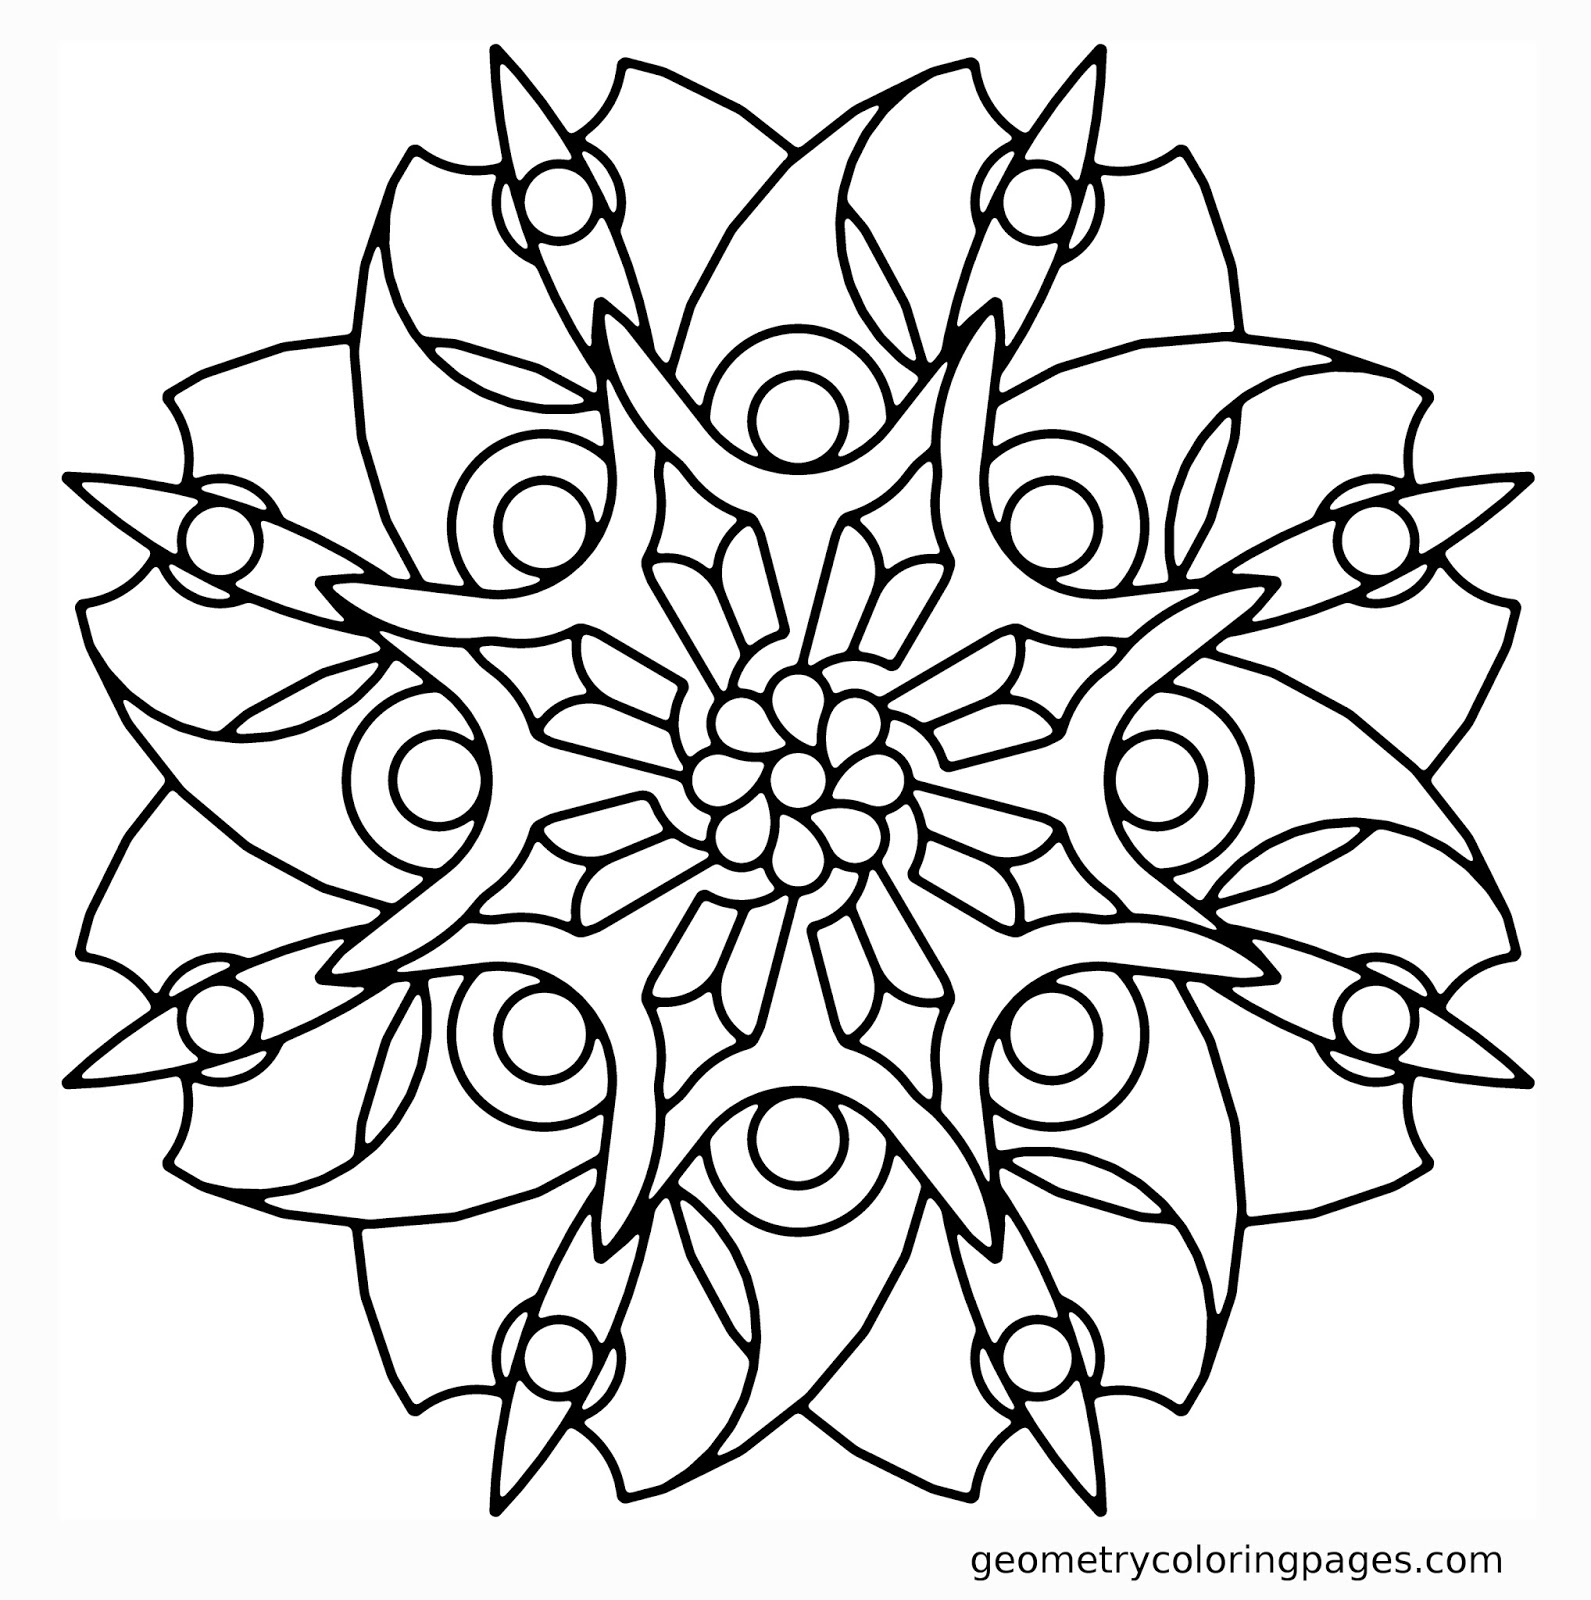 Coloring Pages Geometric Flower Coloring Pages sacred geometry coloring book futpal com mandala meditation pages free for